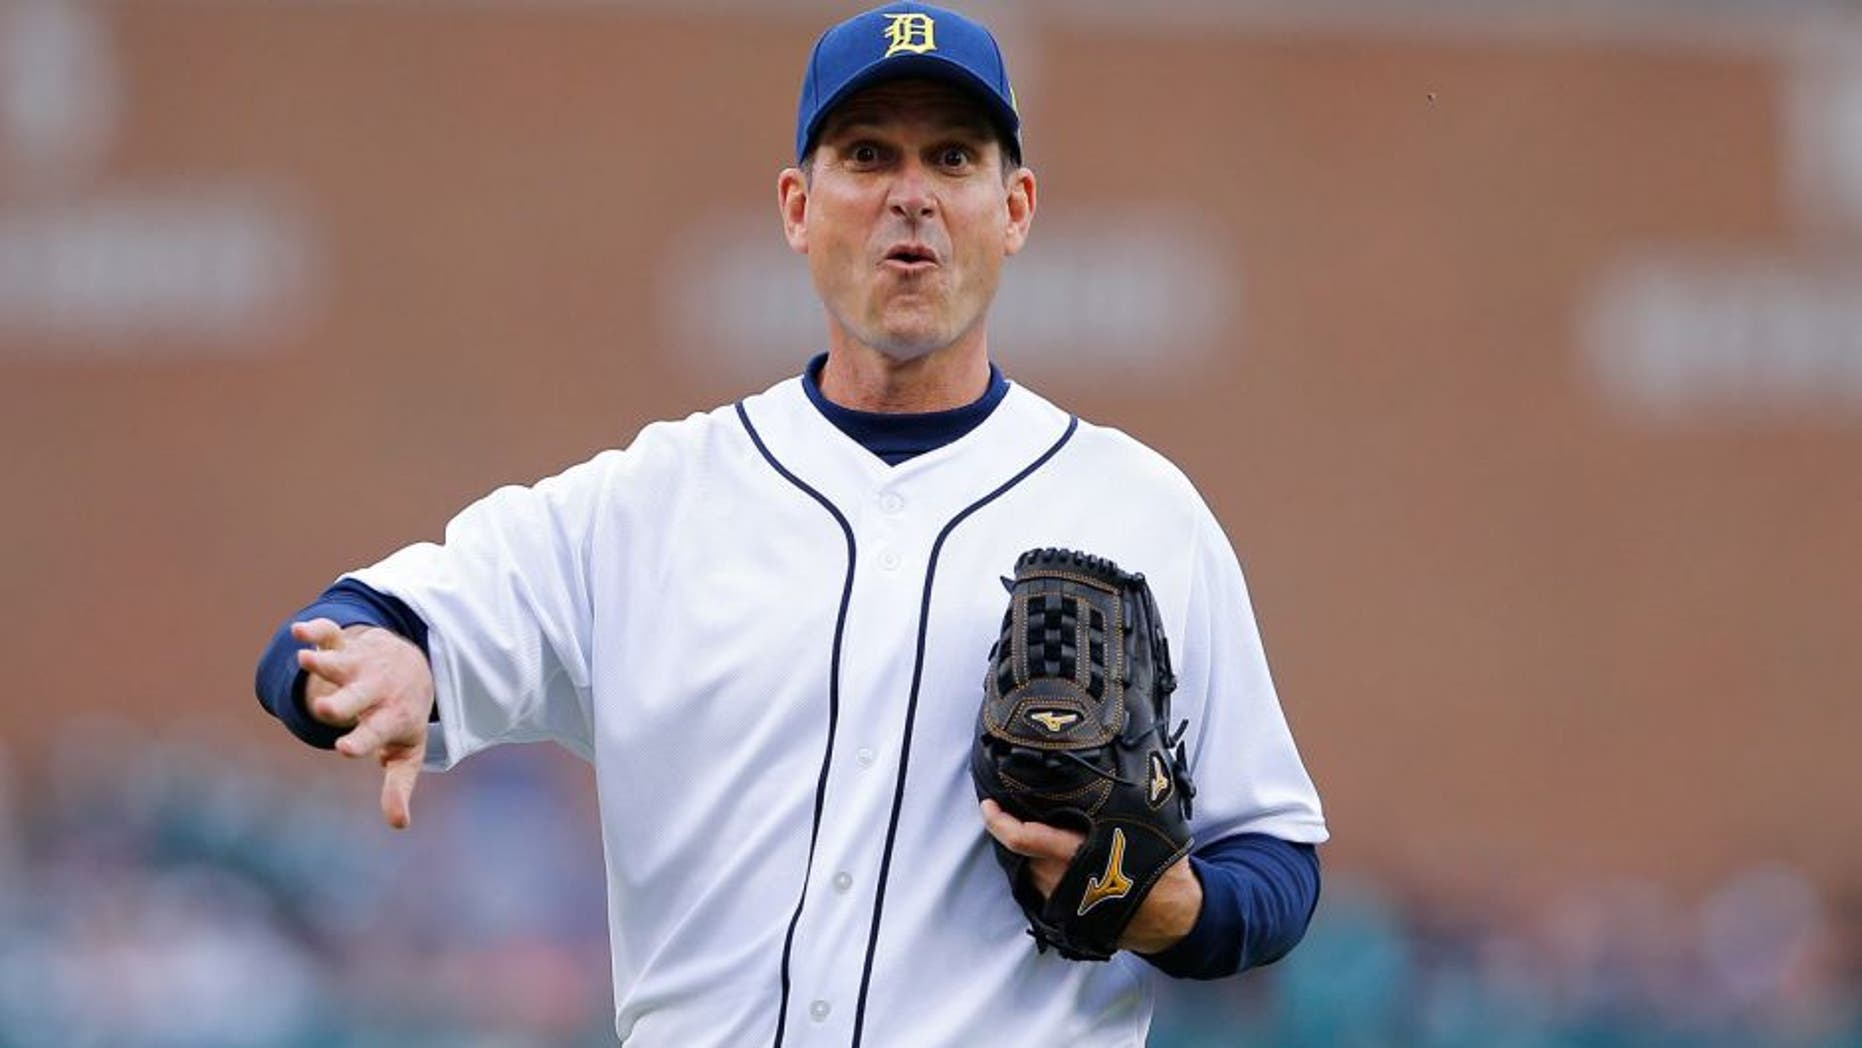 DETROIT, MI - JUNE 30: University of Michigan head football coach Jim Harbaugh throws out the first pitch prior to the start of the interleague game between the Pittsburgh Pirates and the Detroit Tigers play on June 30, 2015 at Comerica Park in Detroit, Michigan. The Pirates defeated the Tigers 5-4 in fourteen innings. (Photo by Leon Halip/Getty Images)